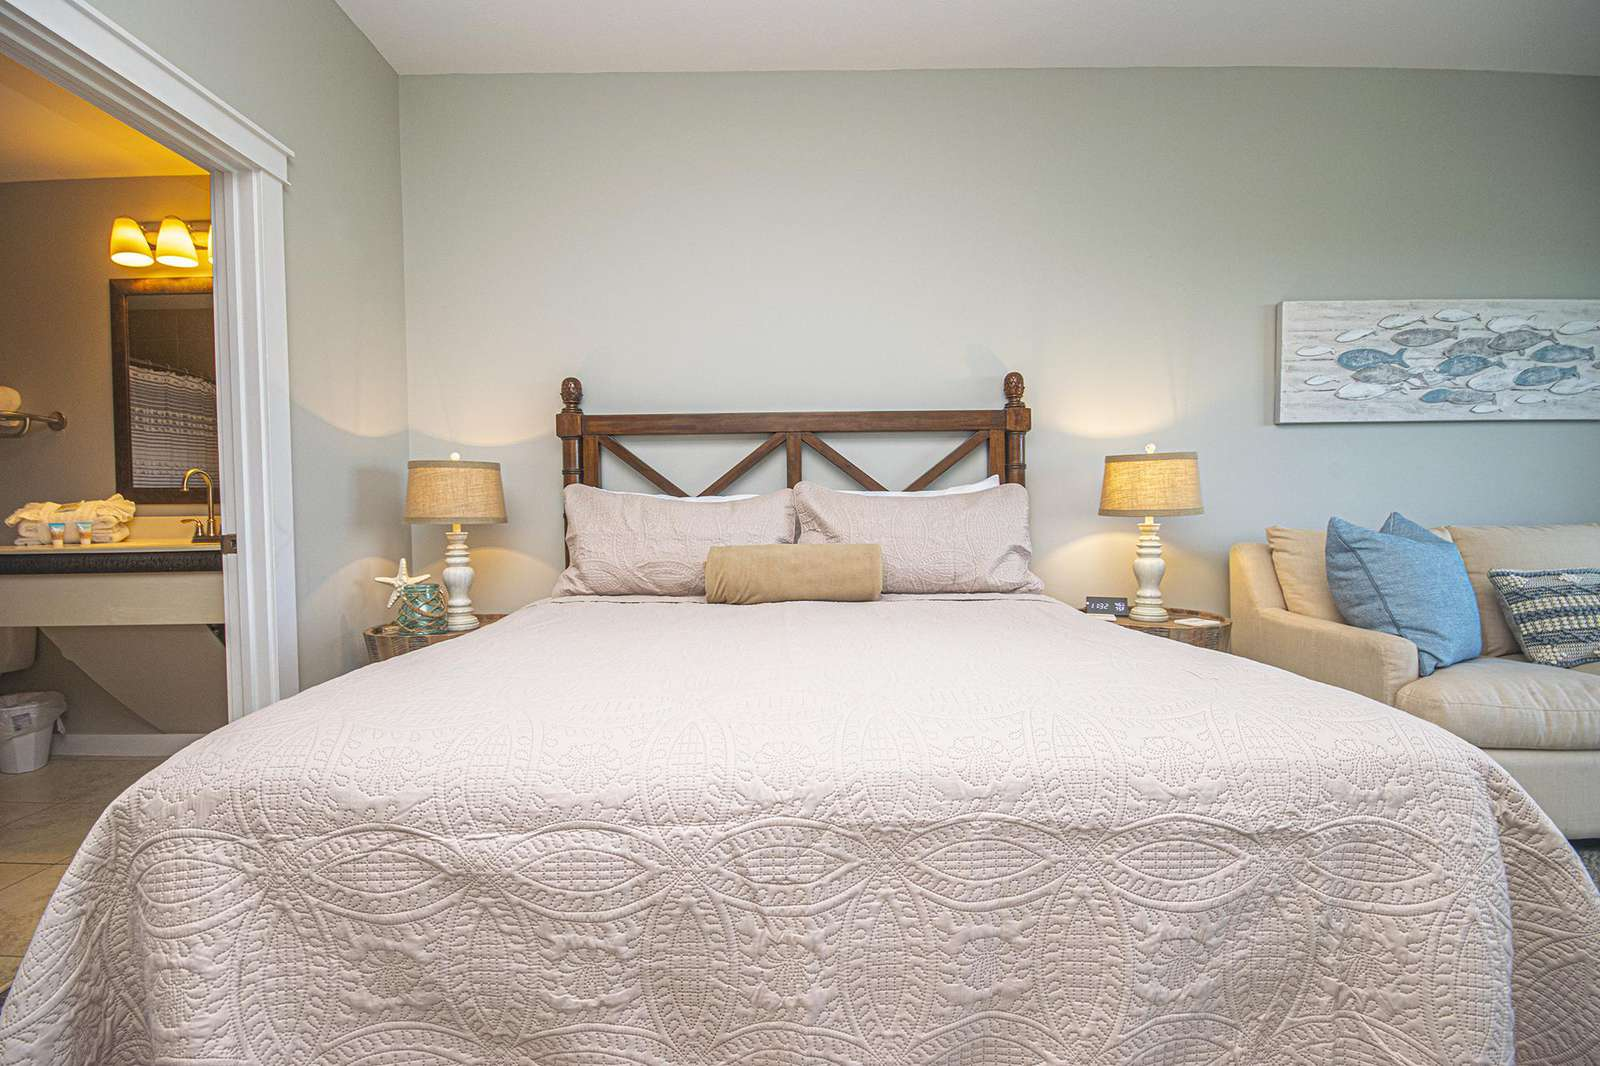 King size bed with provided linen!